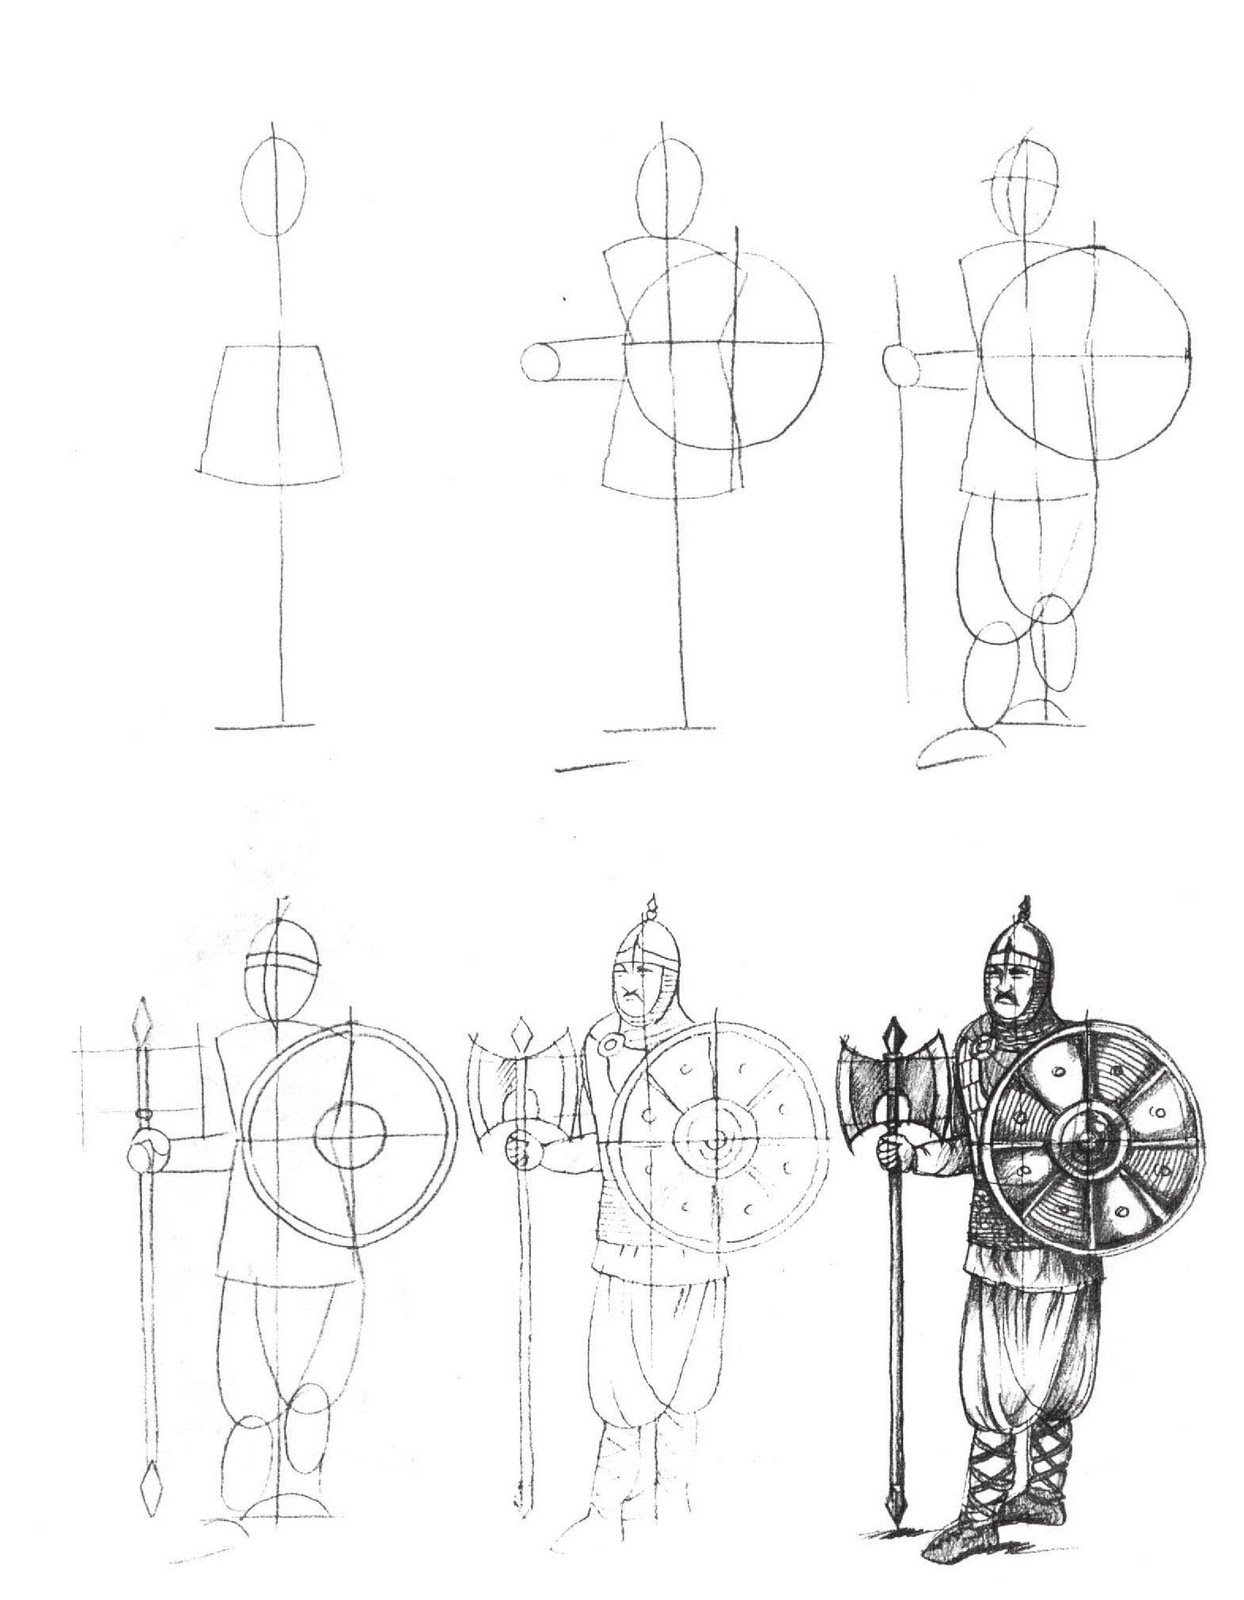 Knight in armor drawing at getdrawings free for personal use